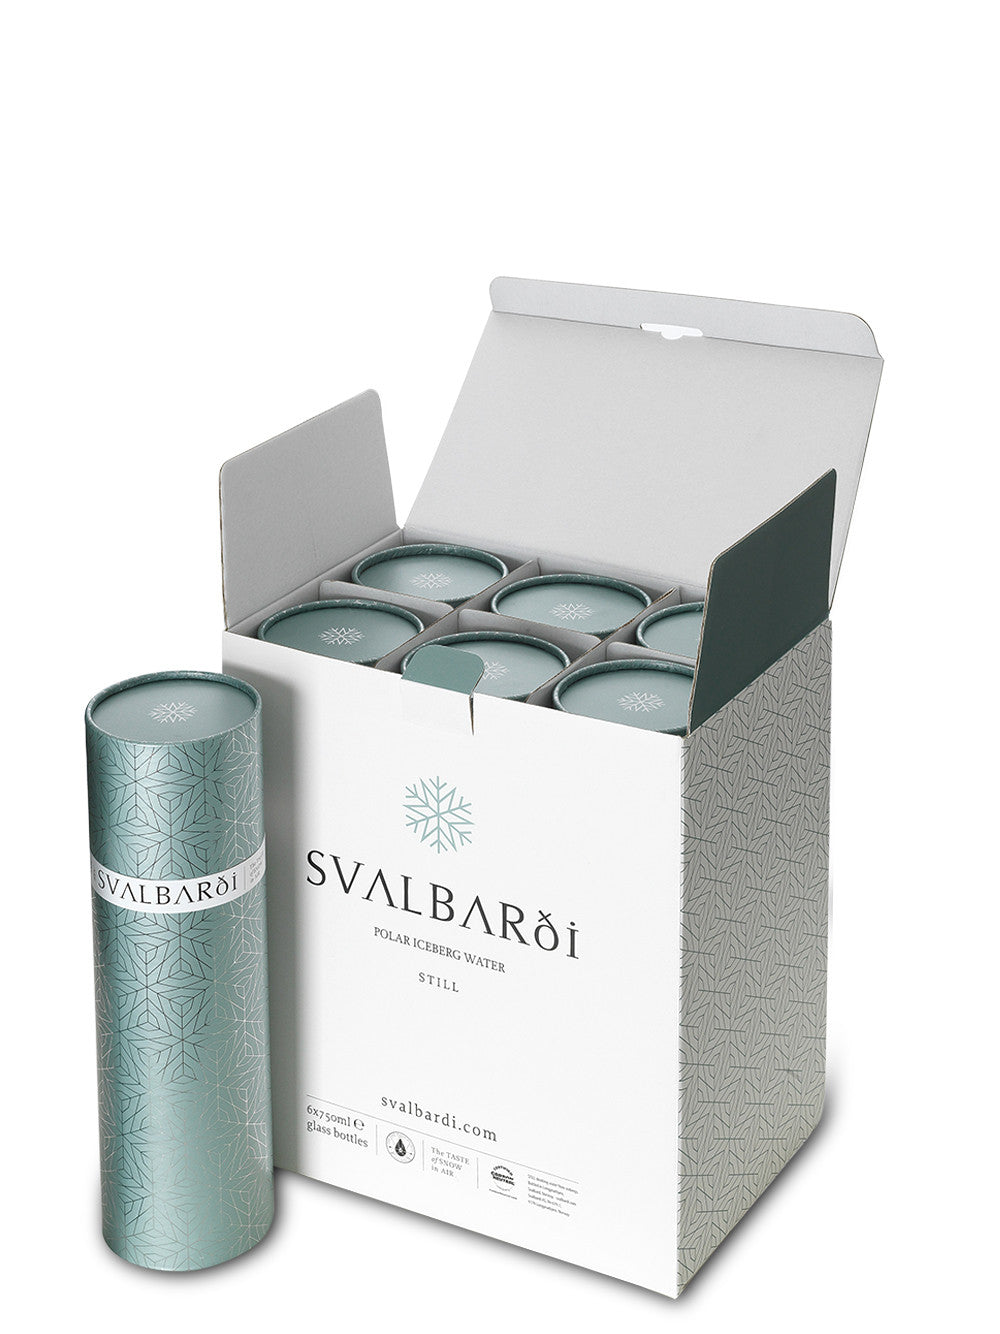 Case of 6 with Gift Tubes (€64.95/bottle) - Free Shipping - svalbardiiceberg